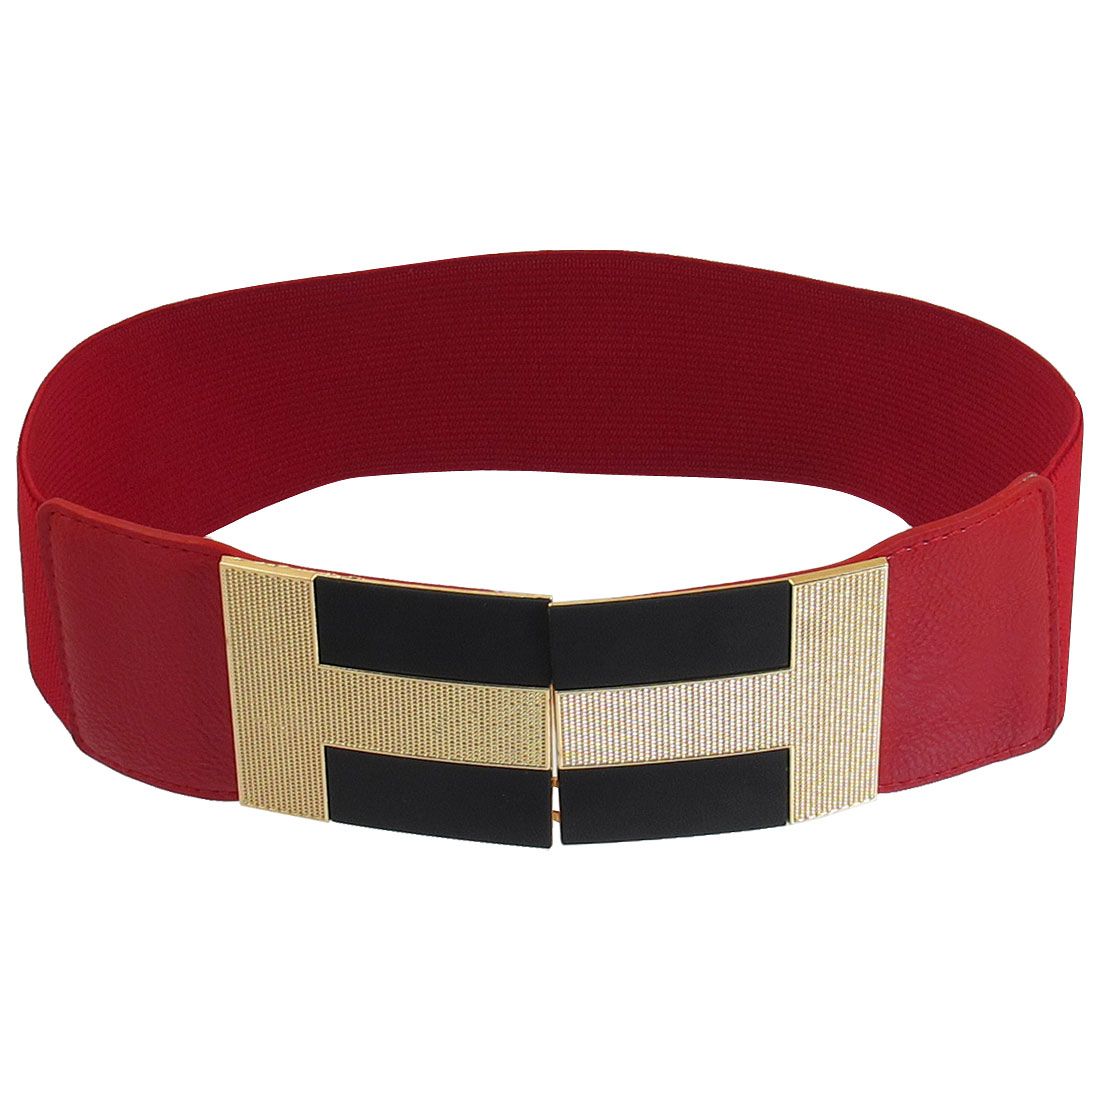 Woman Metal Gold Tone Black Buckle Stretchy Width Waist Belt Band Red